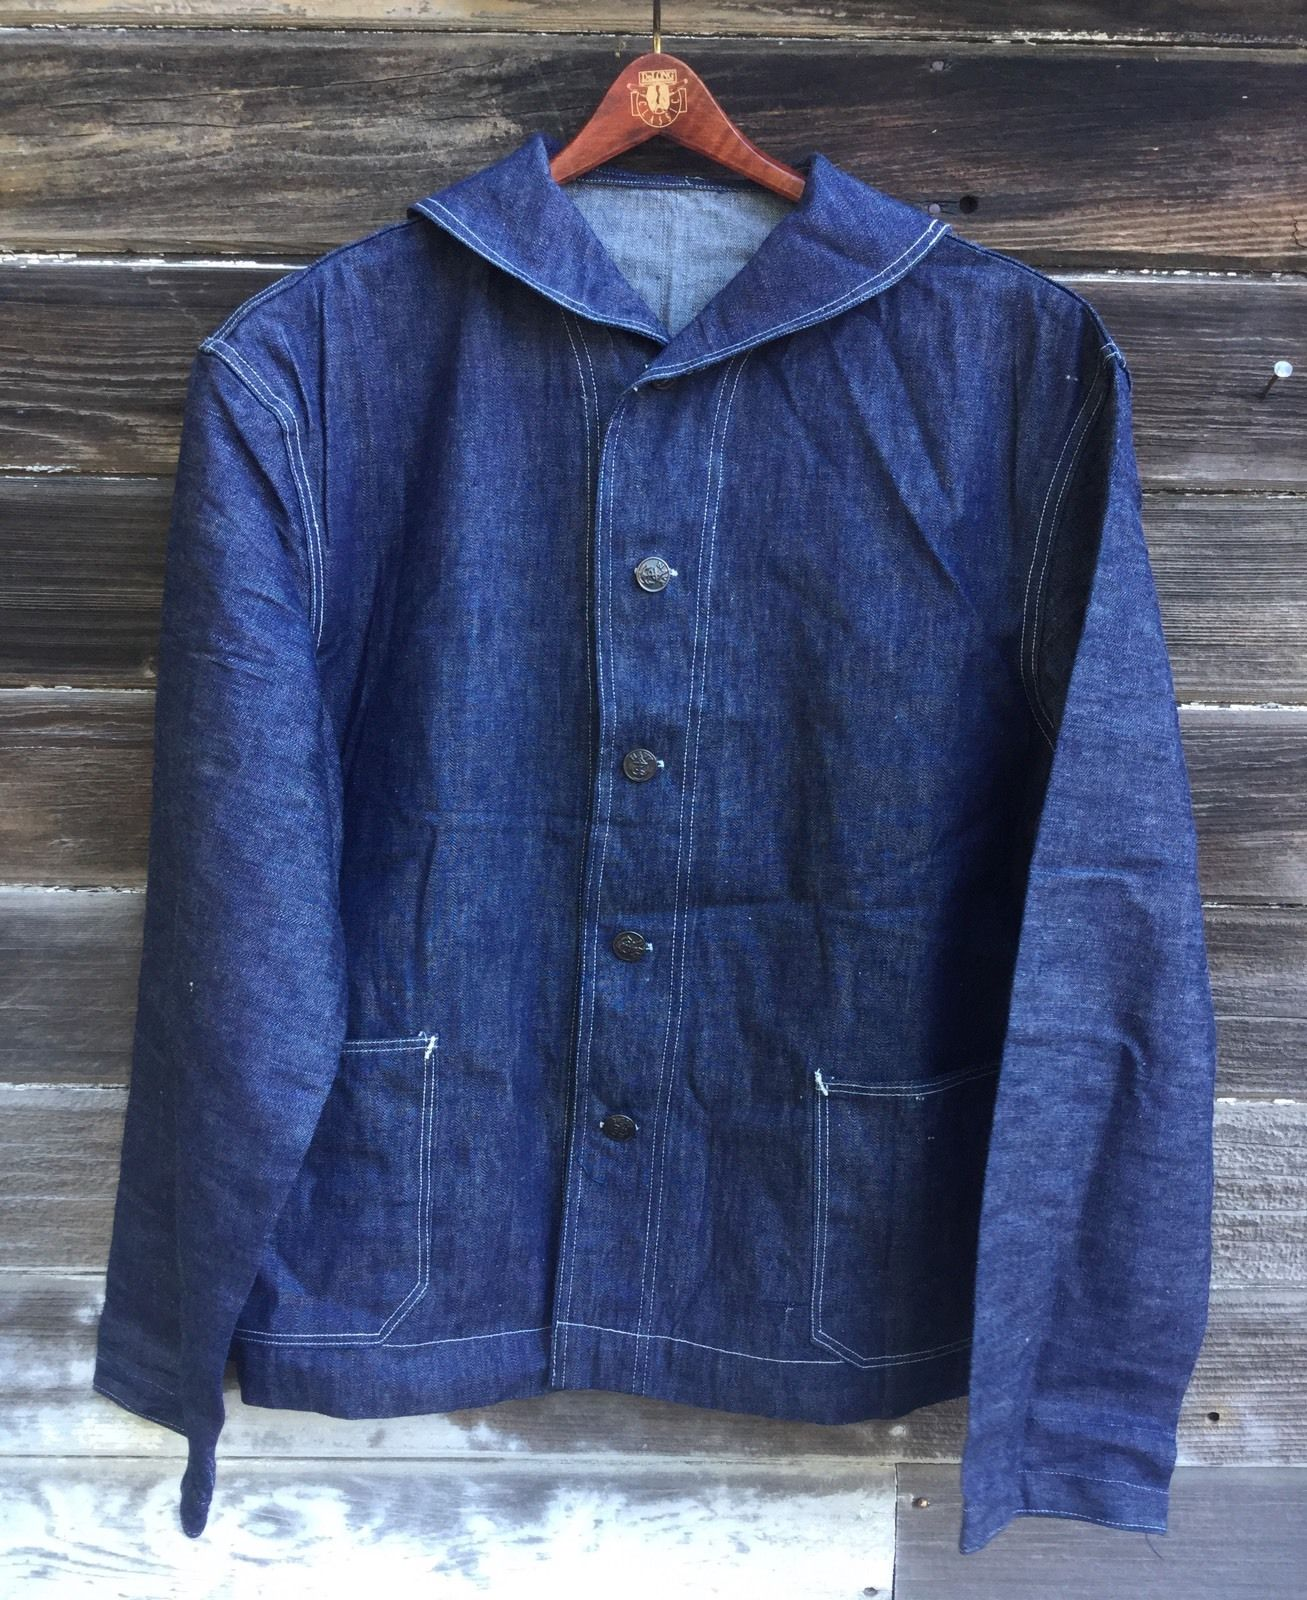 Nostalgia on Wheels: WWII USN Shawl Collar Denim Jacket